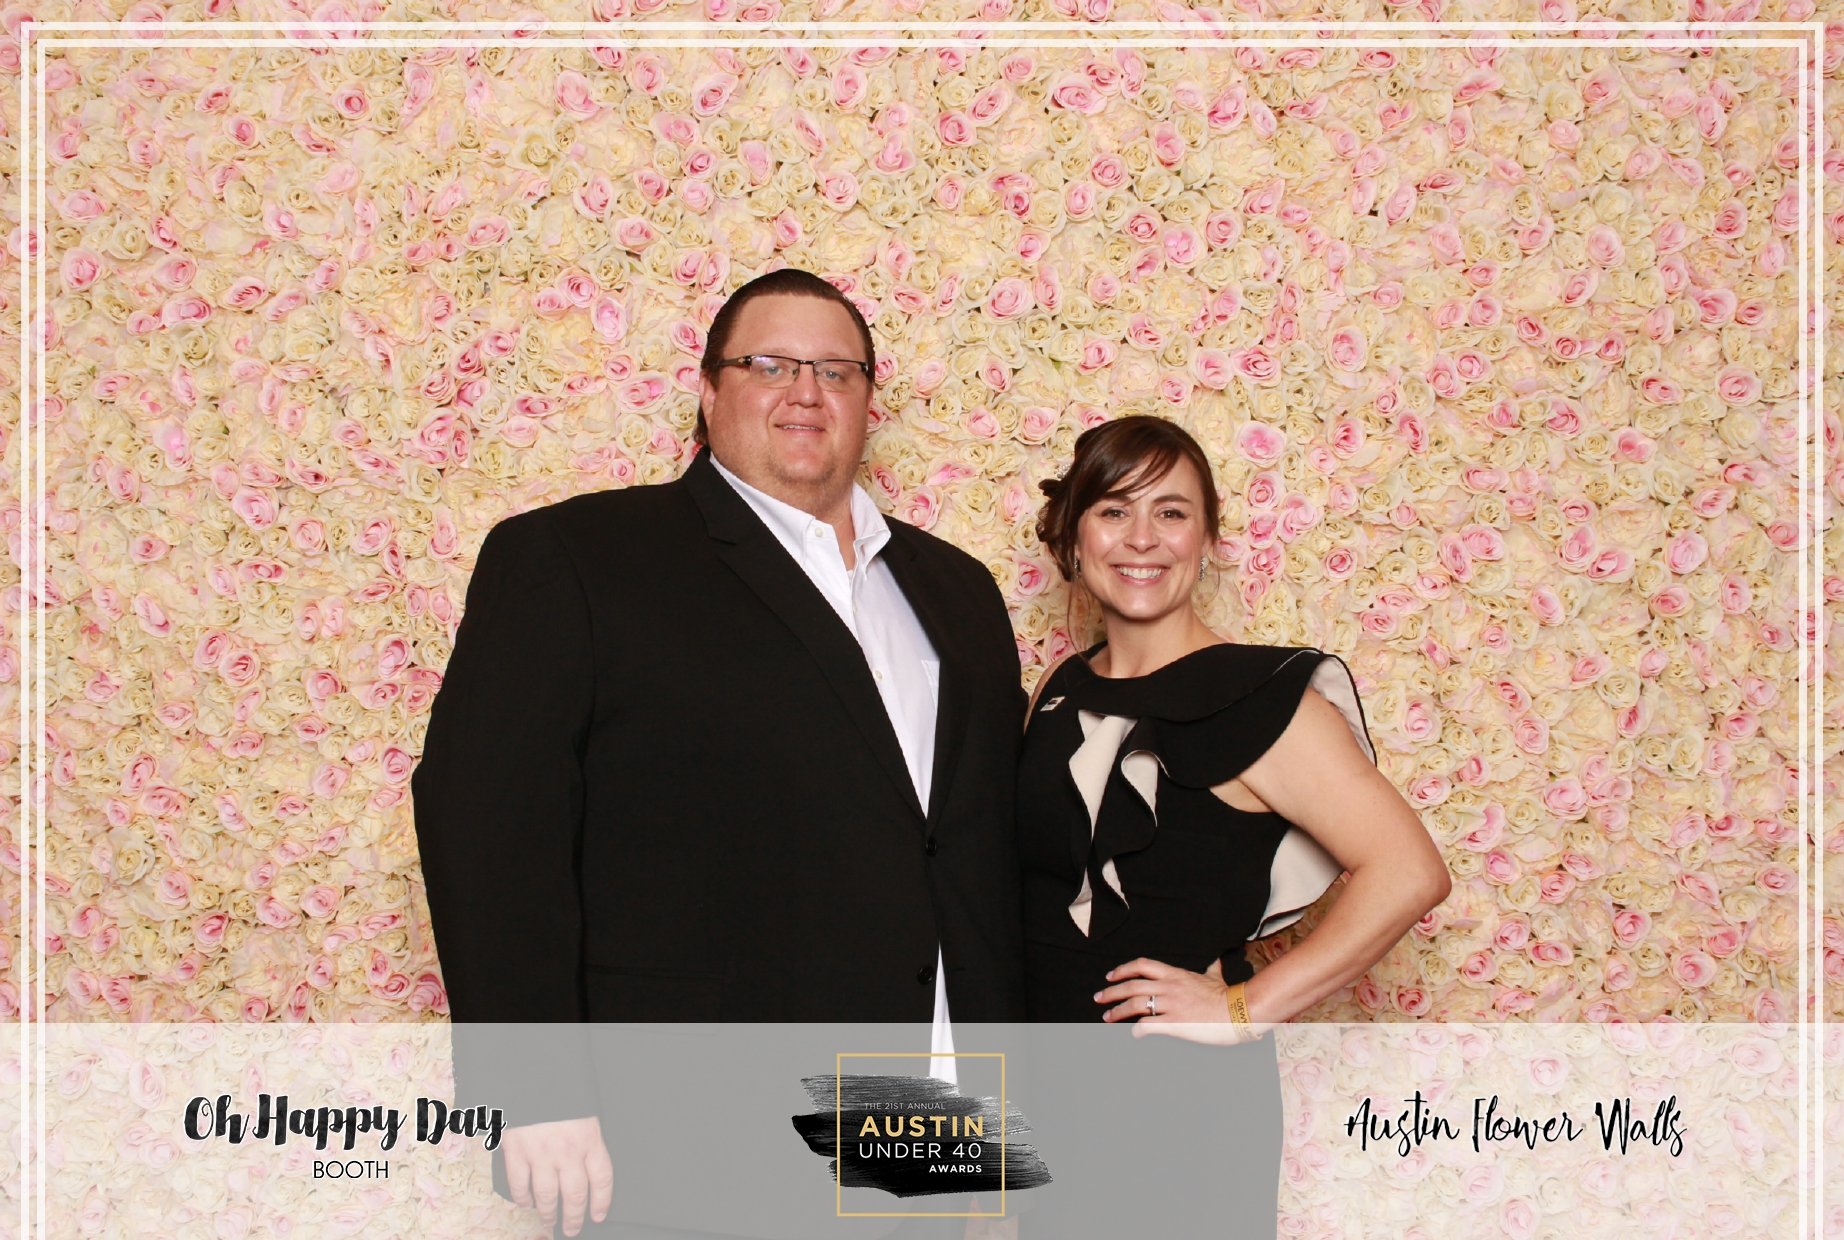 Oh Happy Day Booth - Austin Under 40-53.jpg